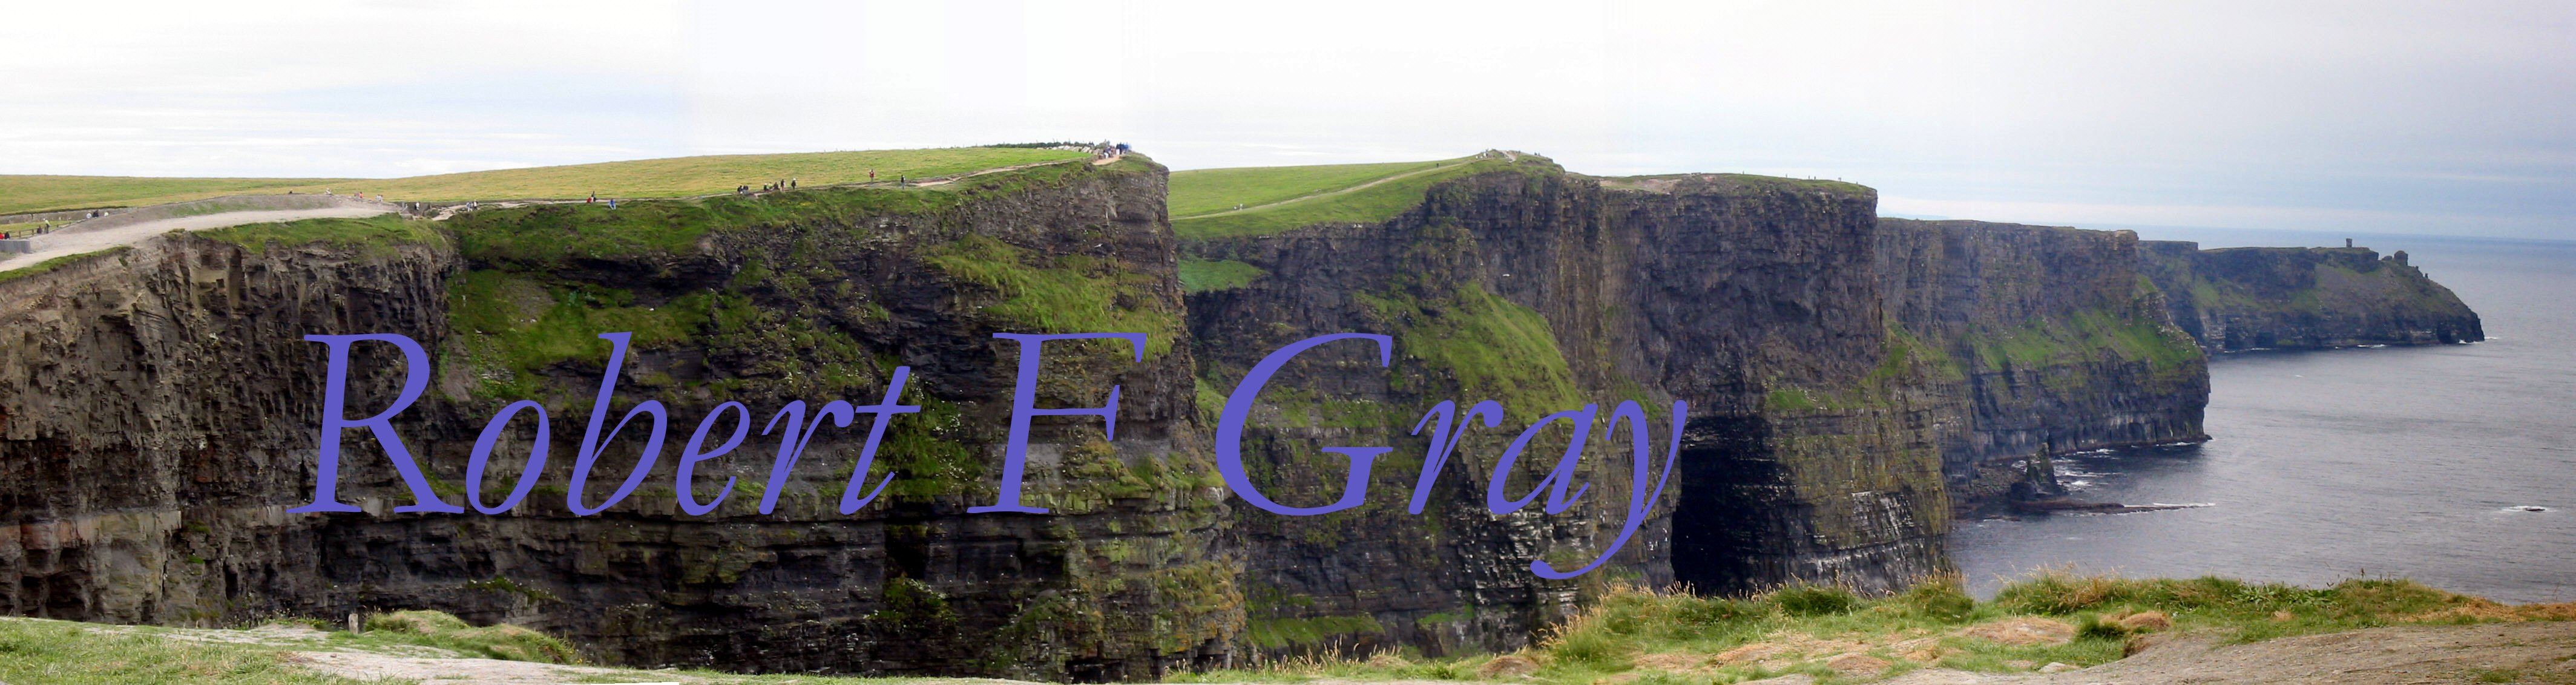 Robert F. Gray - Cliffs of Moher, Ireland